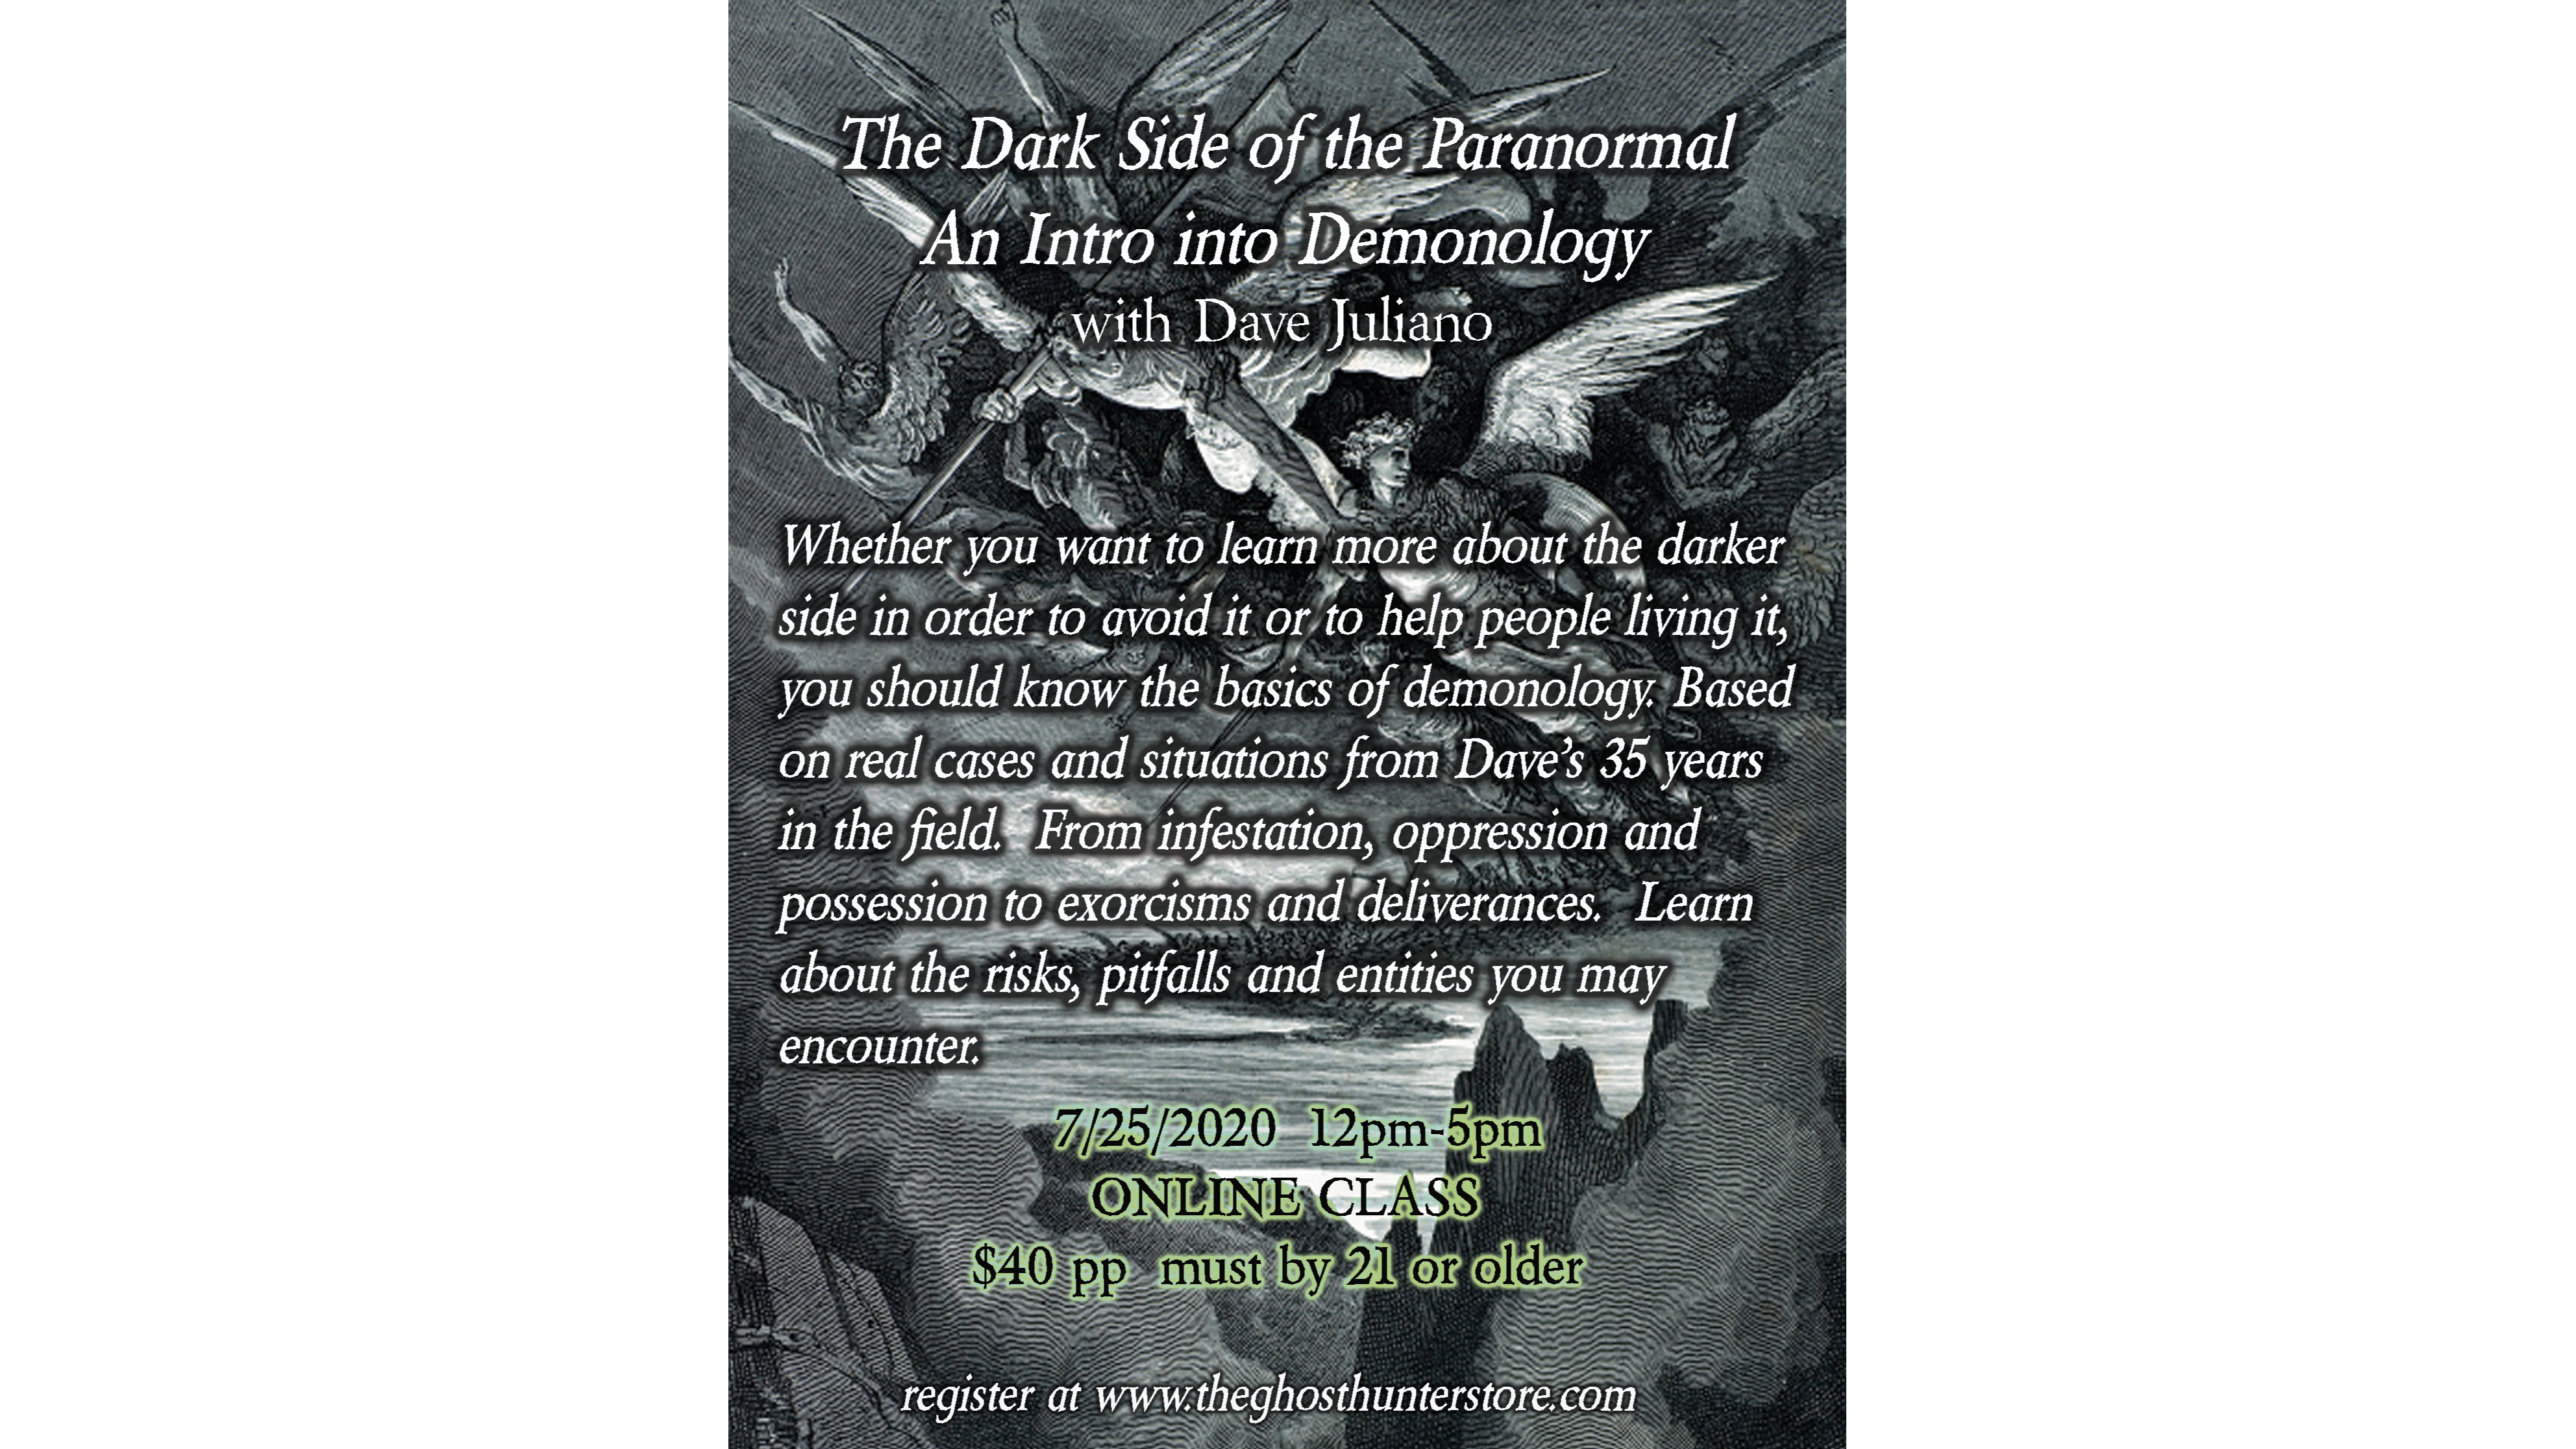 Photo for Intro into Demonology - The Dark Side of the Paranormal on ViewStub